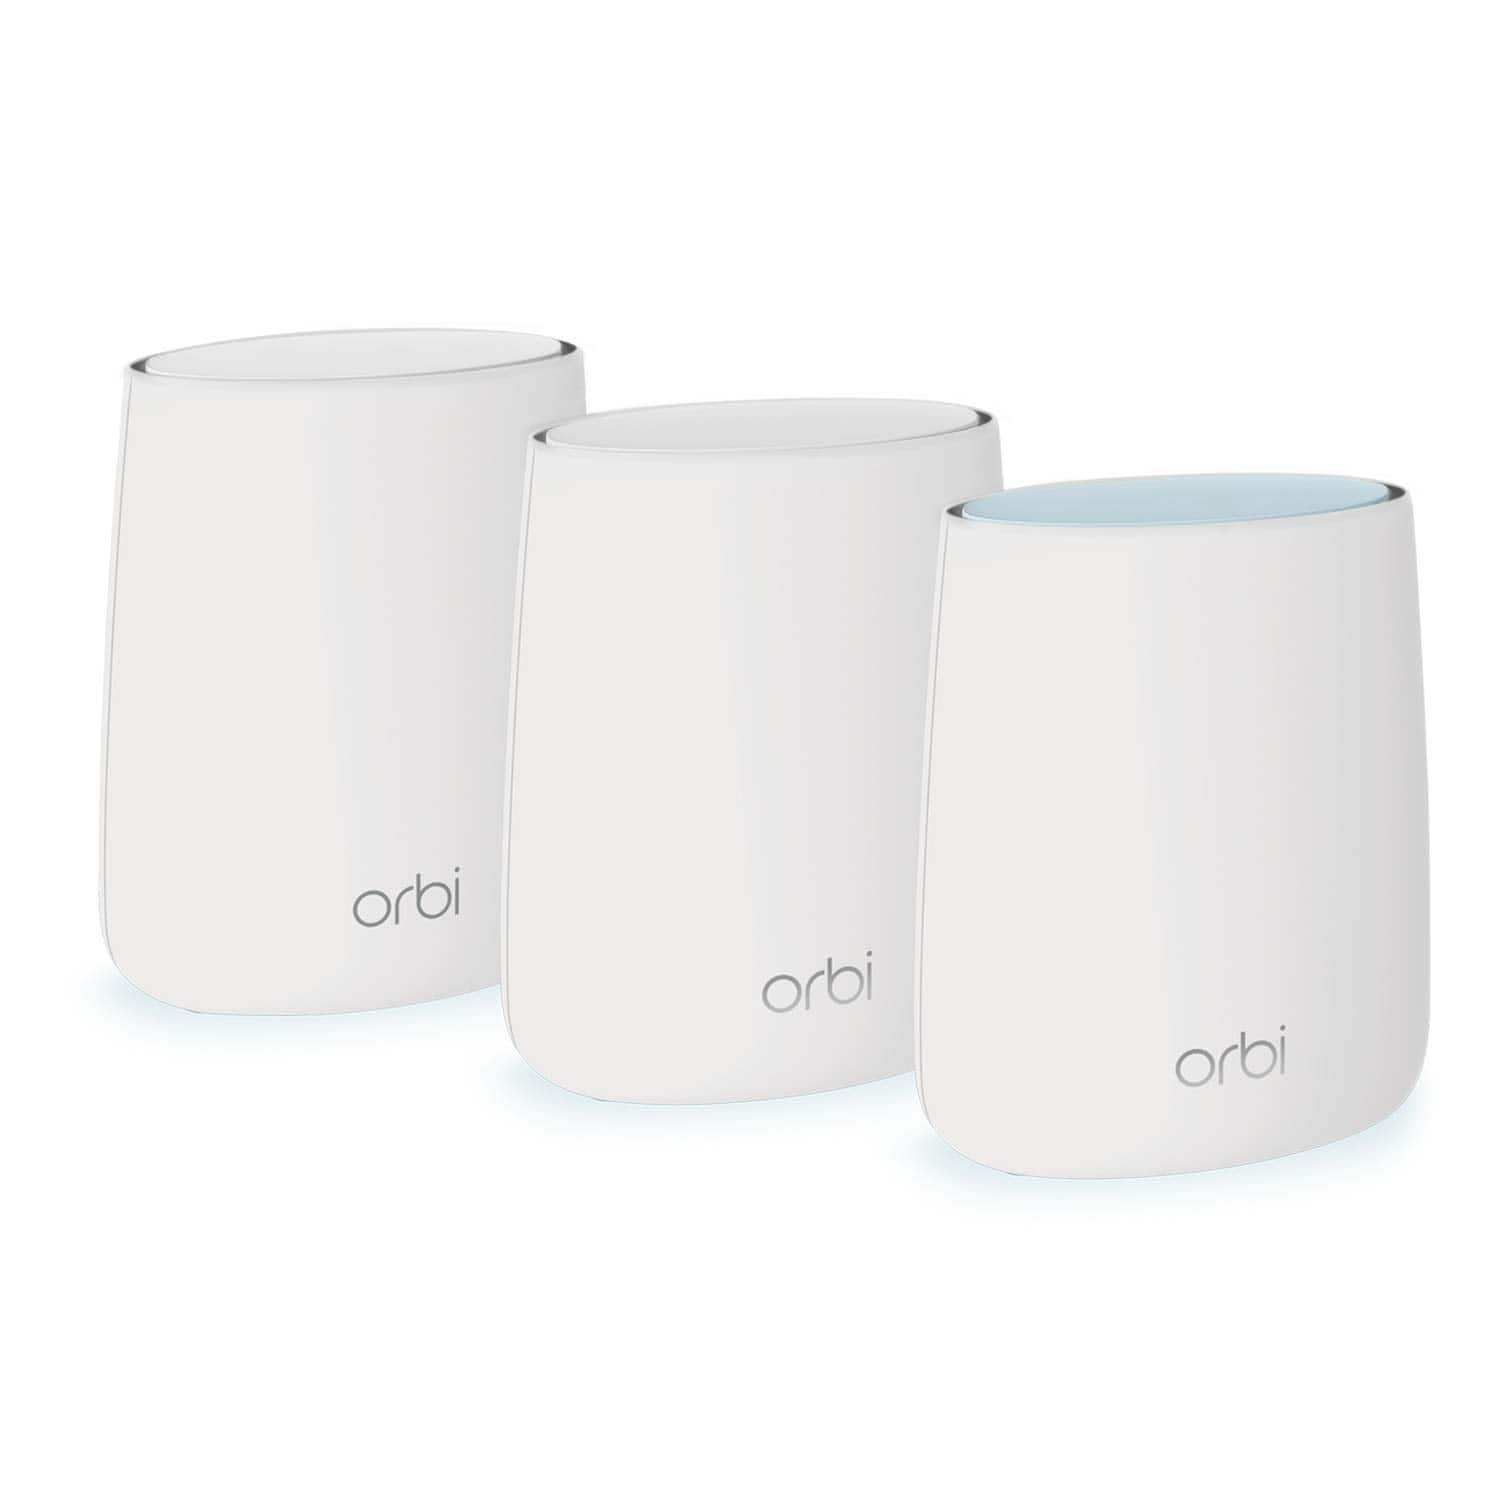 Netgear Orbi AC2200 Whole Home Mesh WiFi System (Router + 2x